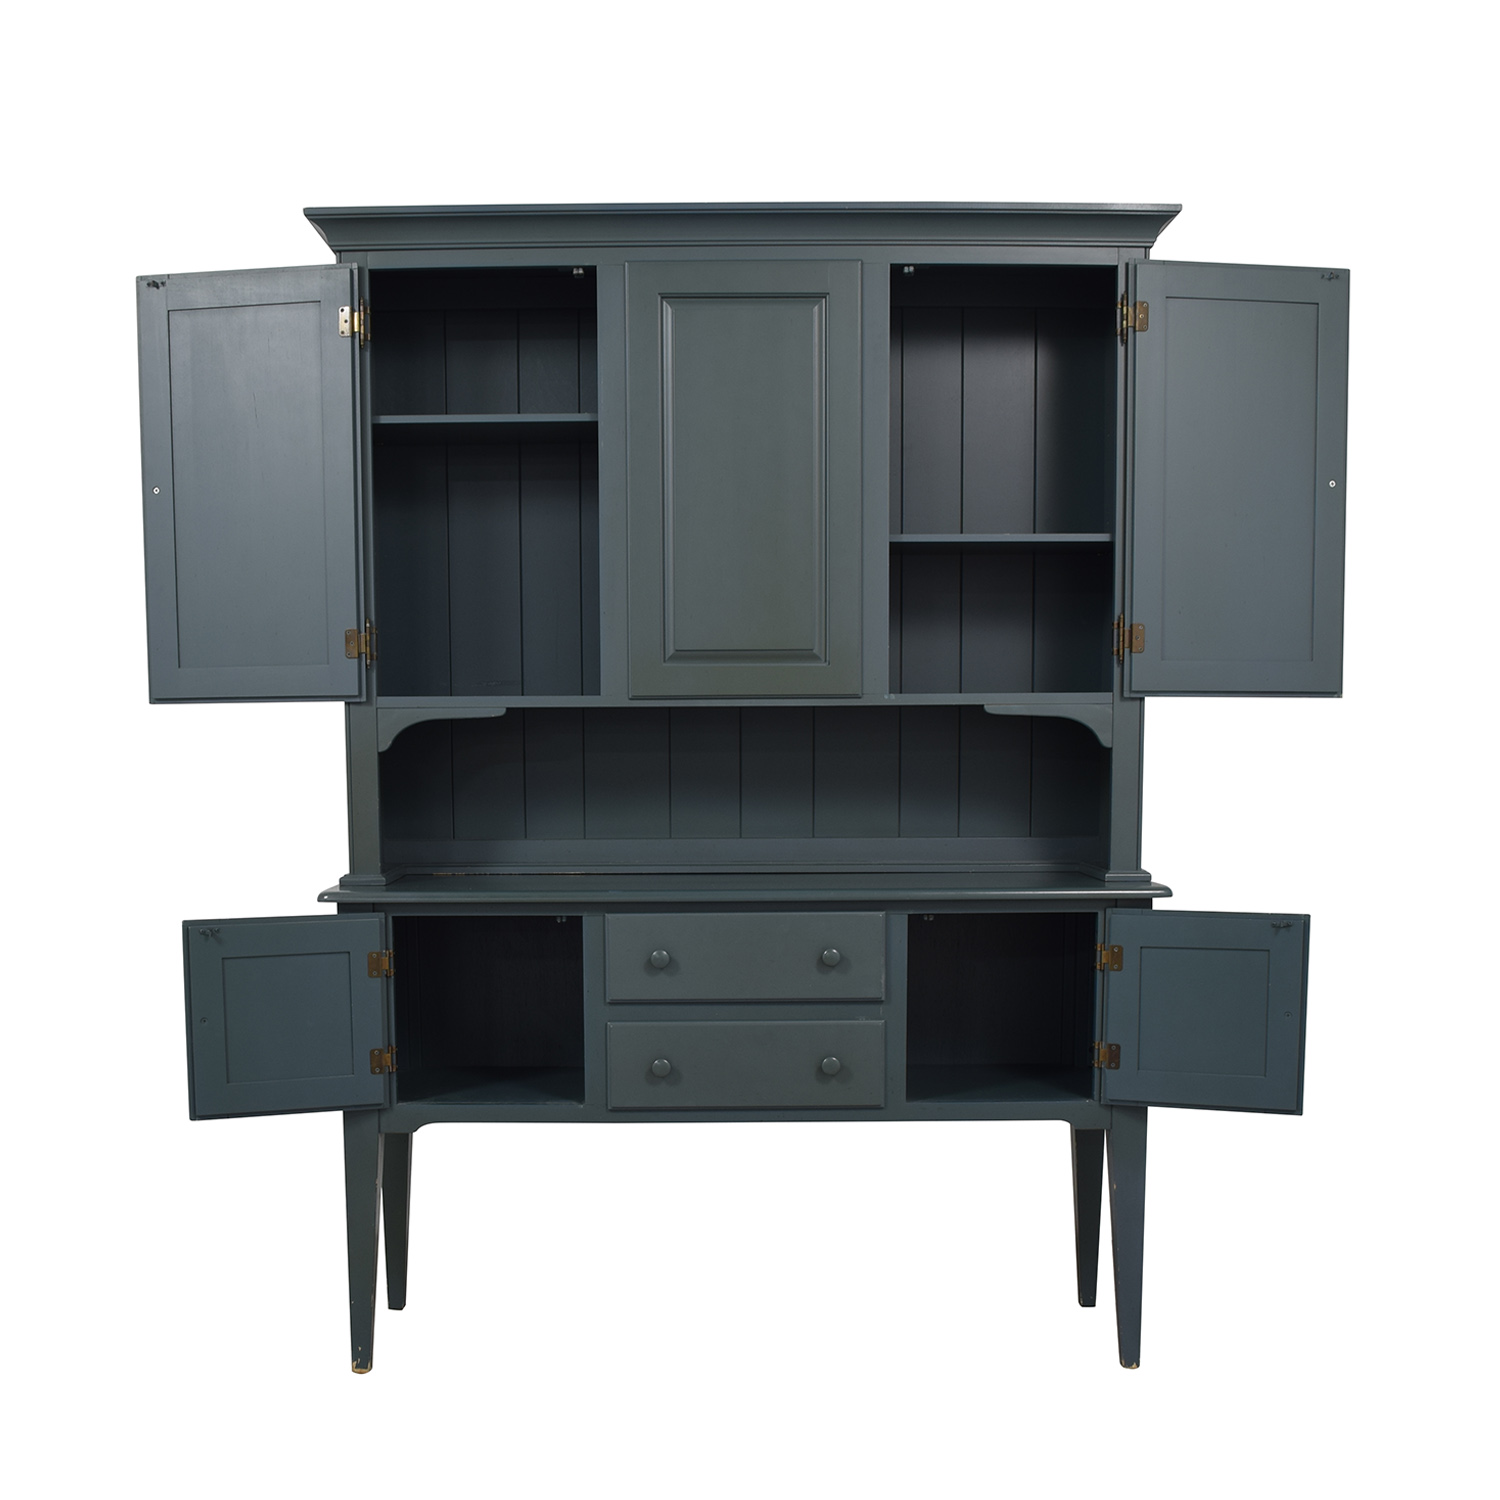 Nichols & Stone Nichols & Stone Teal Two-Drawer Hutch nj